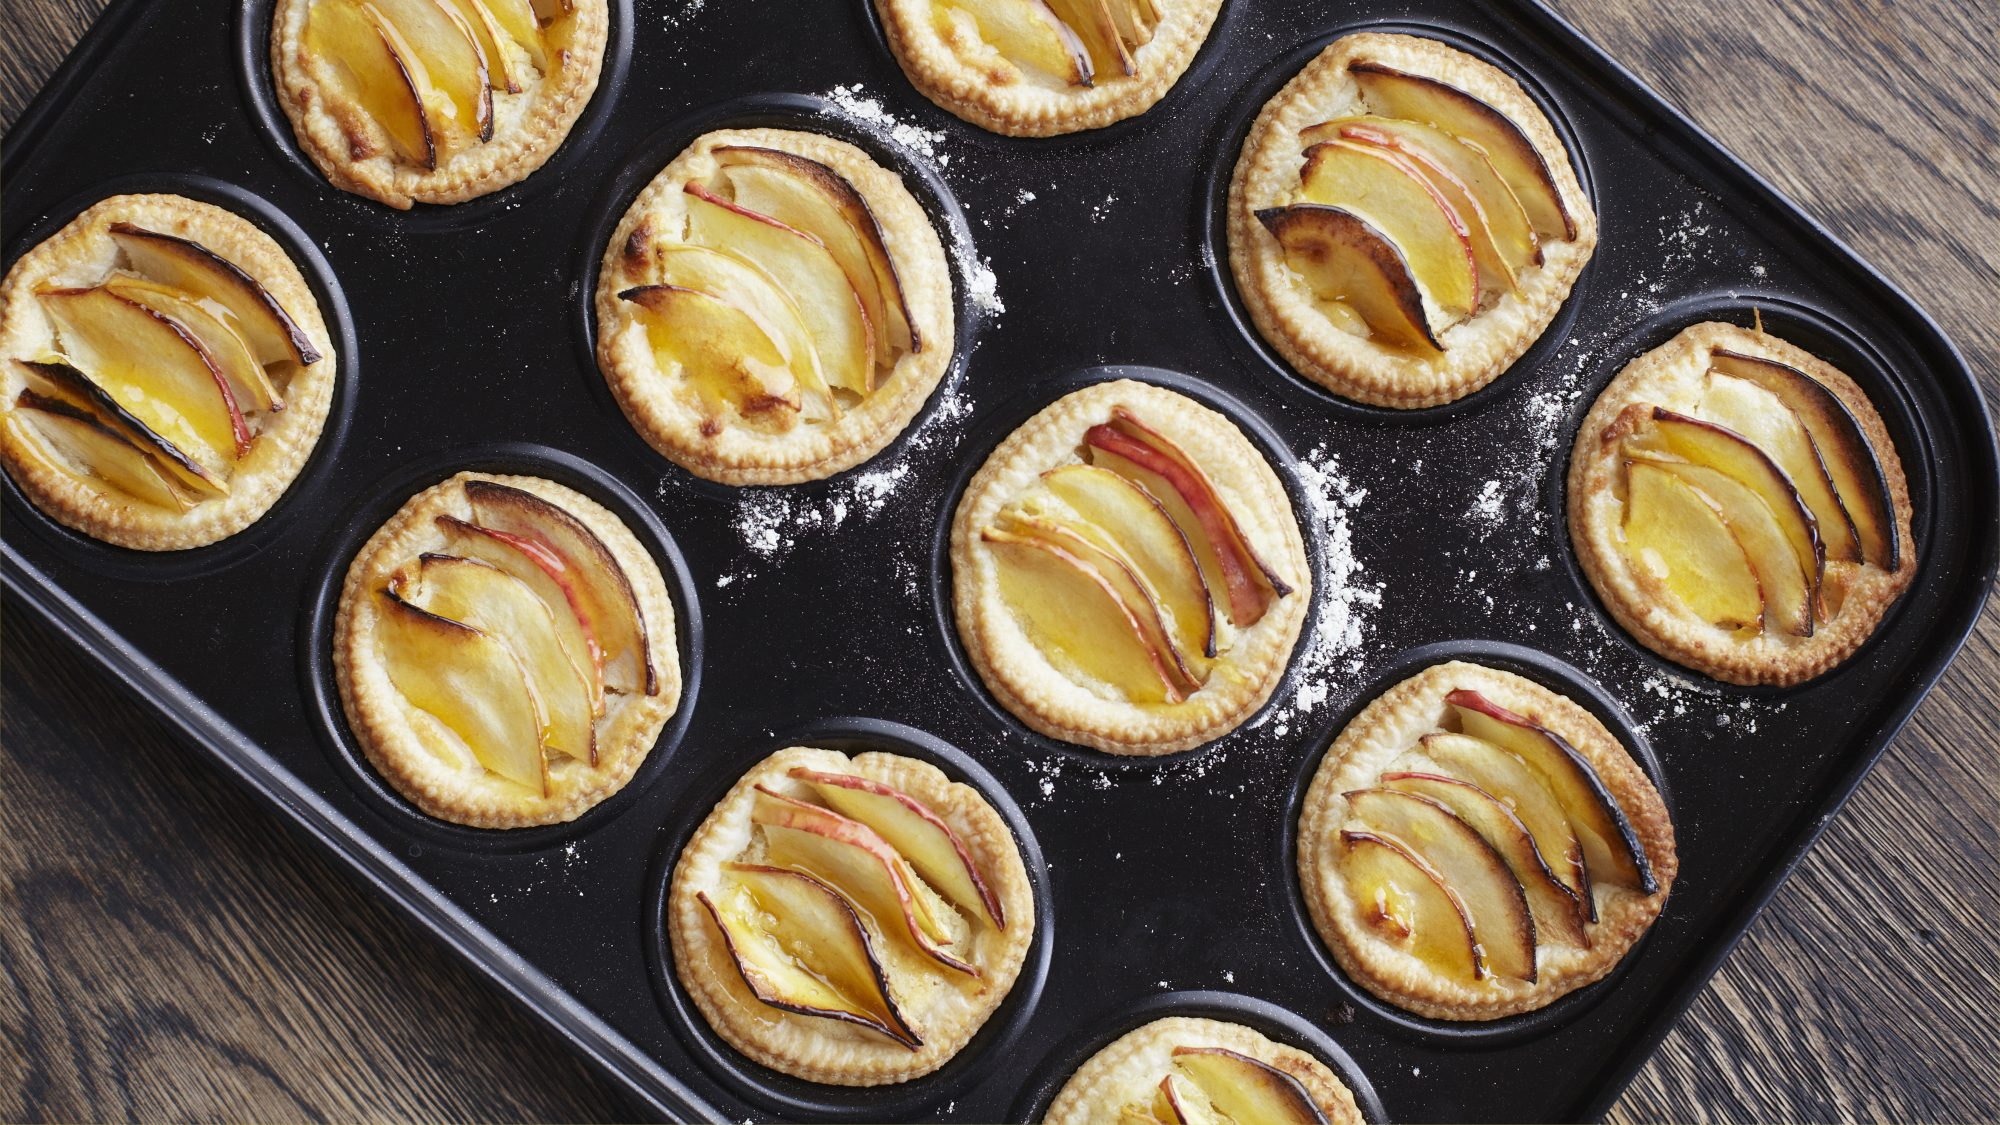 how-to-scale-recipes: mini pies in oven